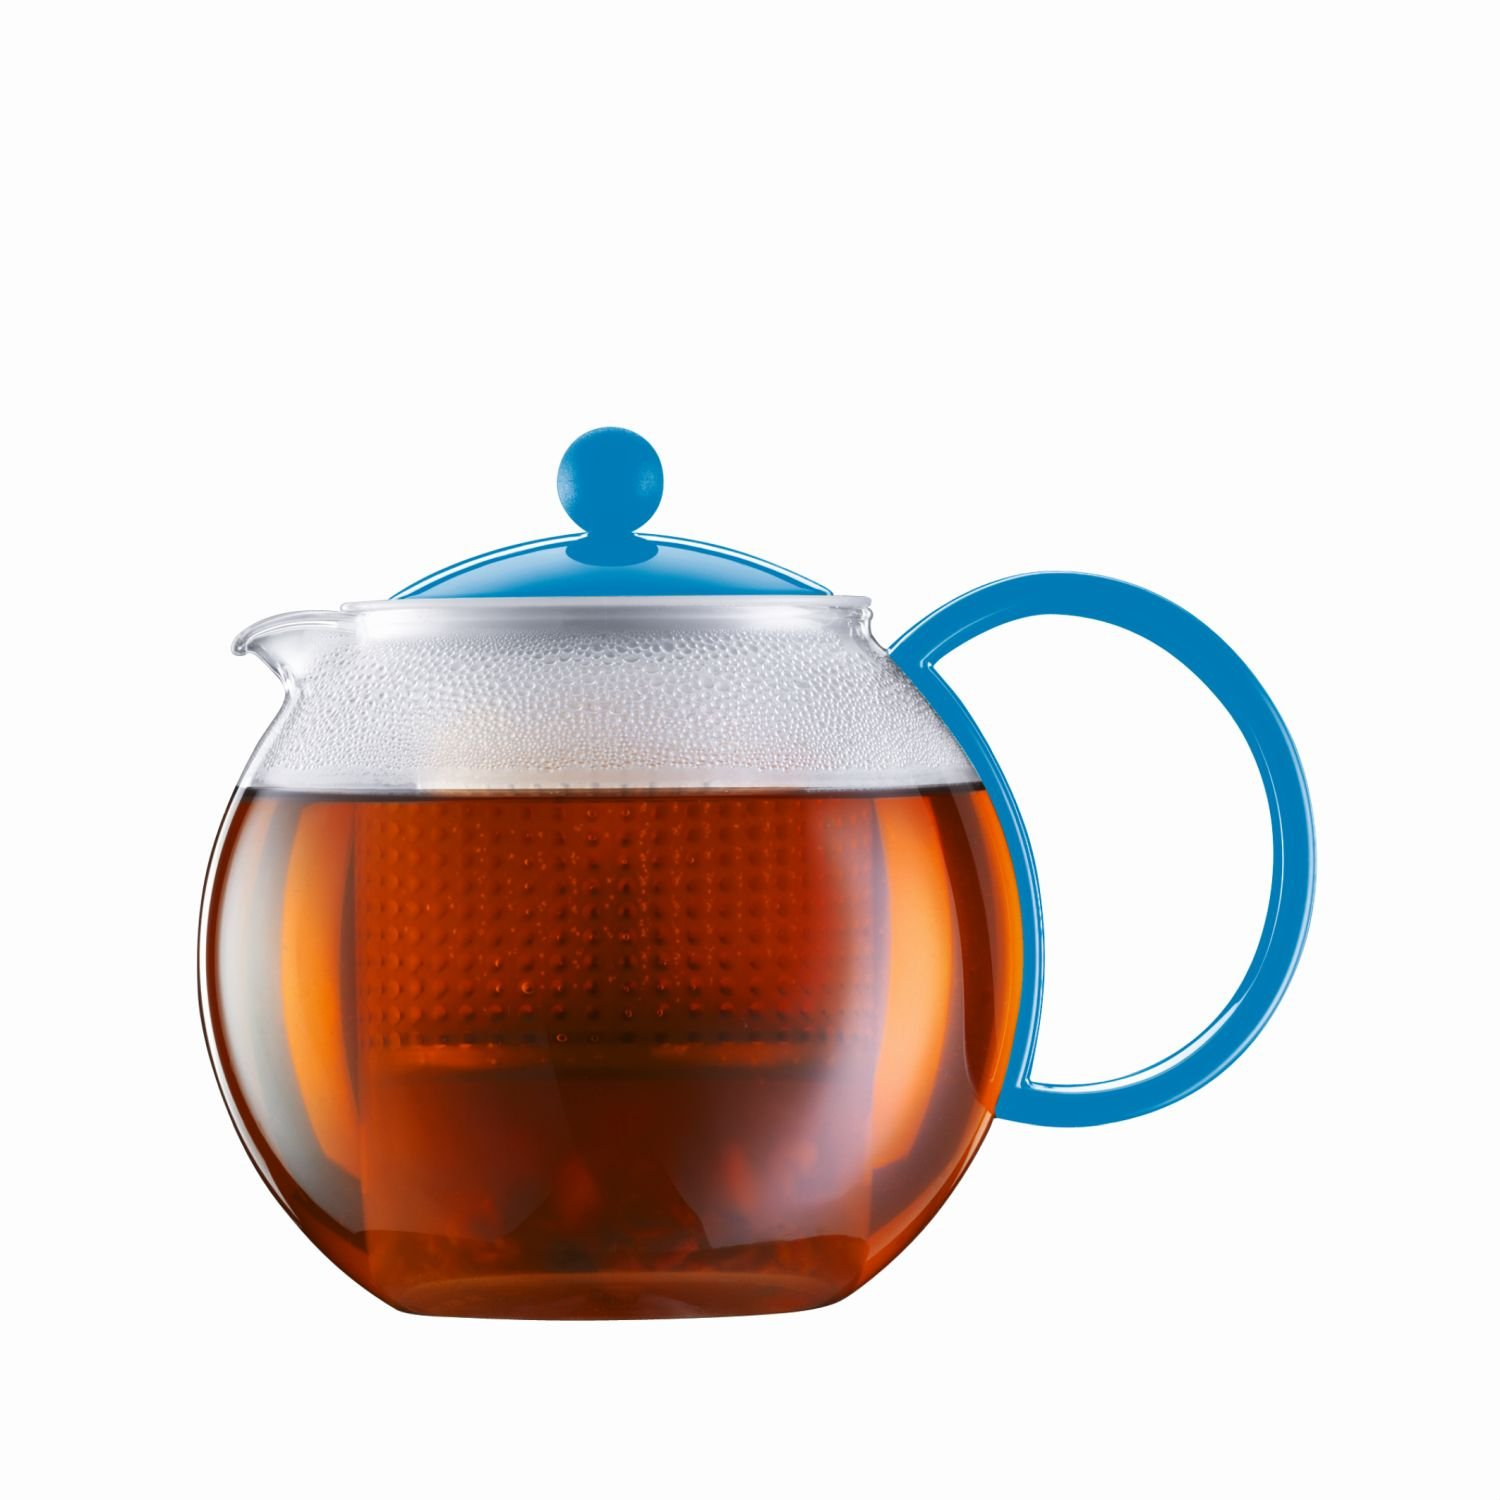 Bodum ASSAM Tea Maker (Plastic Strainer, Plastic Lid, 1.0 L/34 oz) - Off white 1.0 L/34 oz) - Off white 1844-913